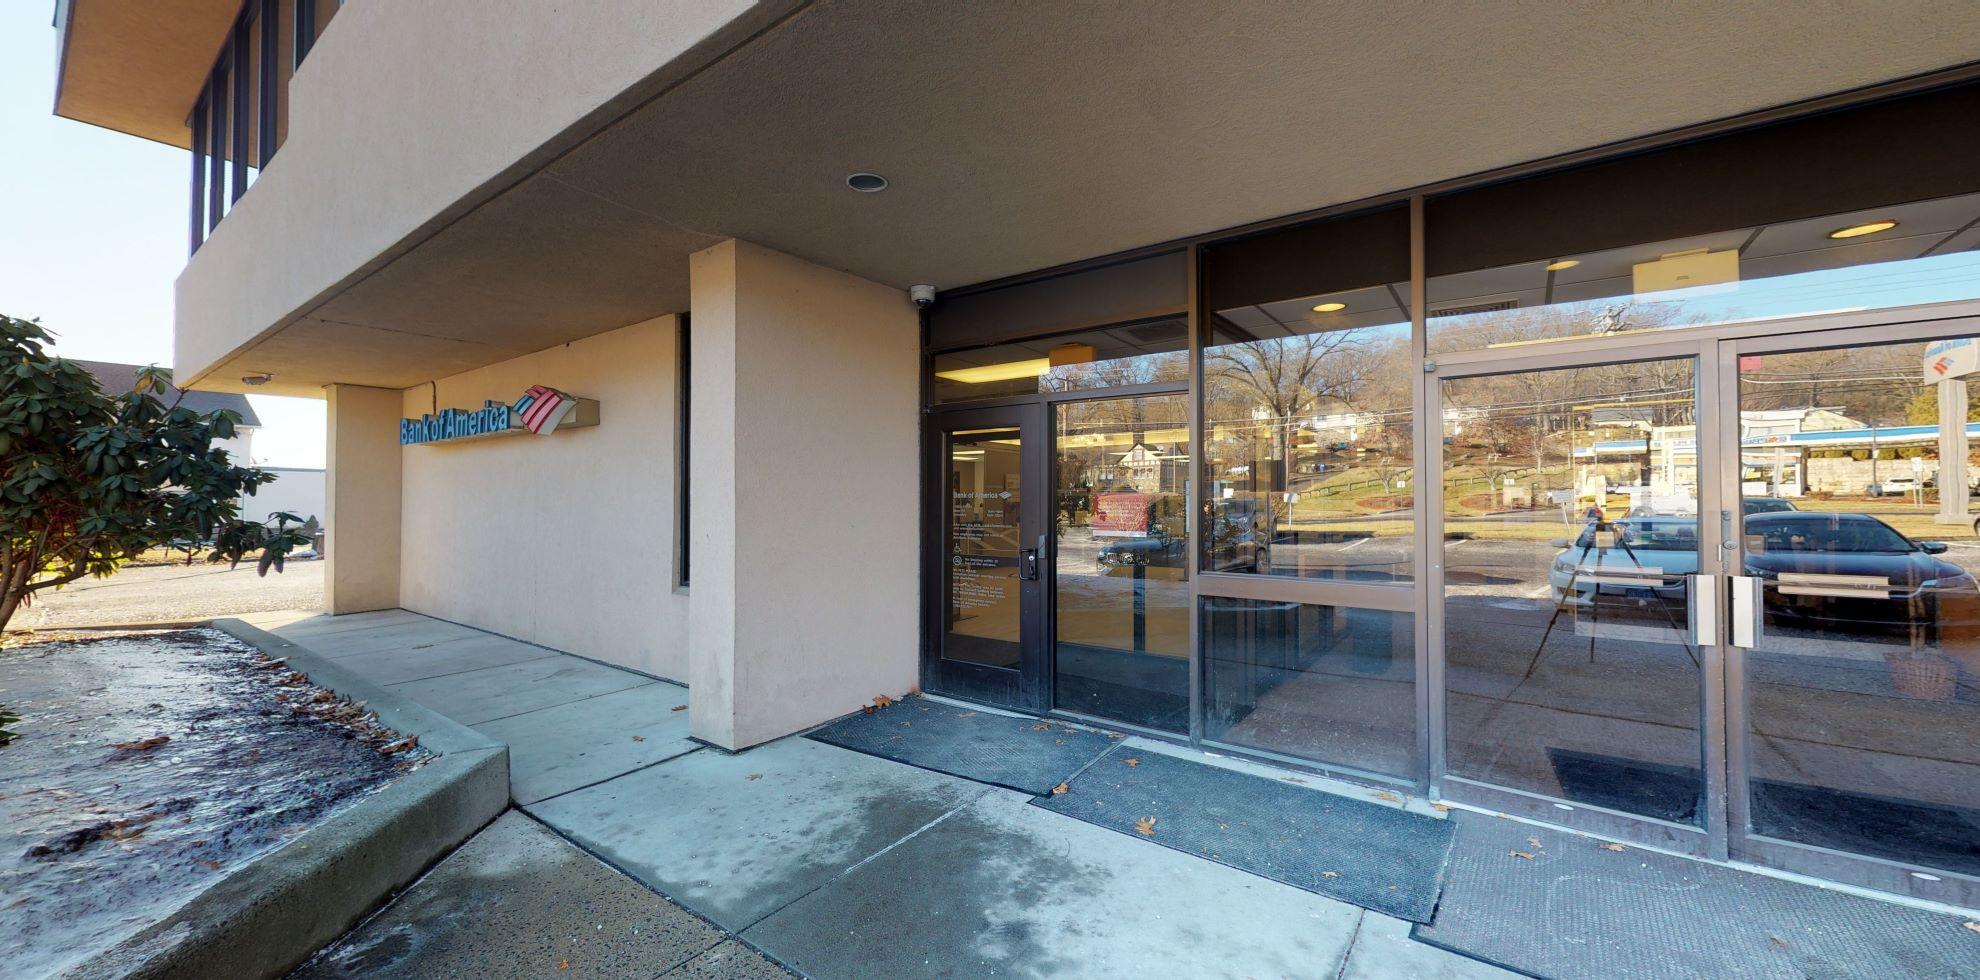 Bank of America financial center with drive-thru ATM   26 Mill Plain Rd, Danbury, CT 06811